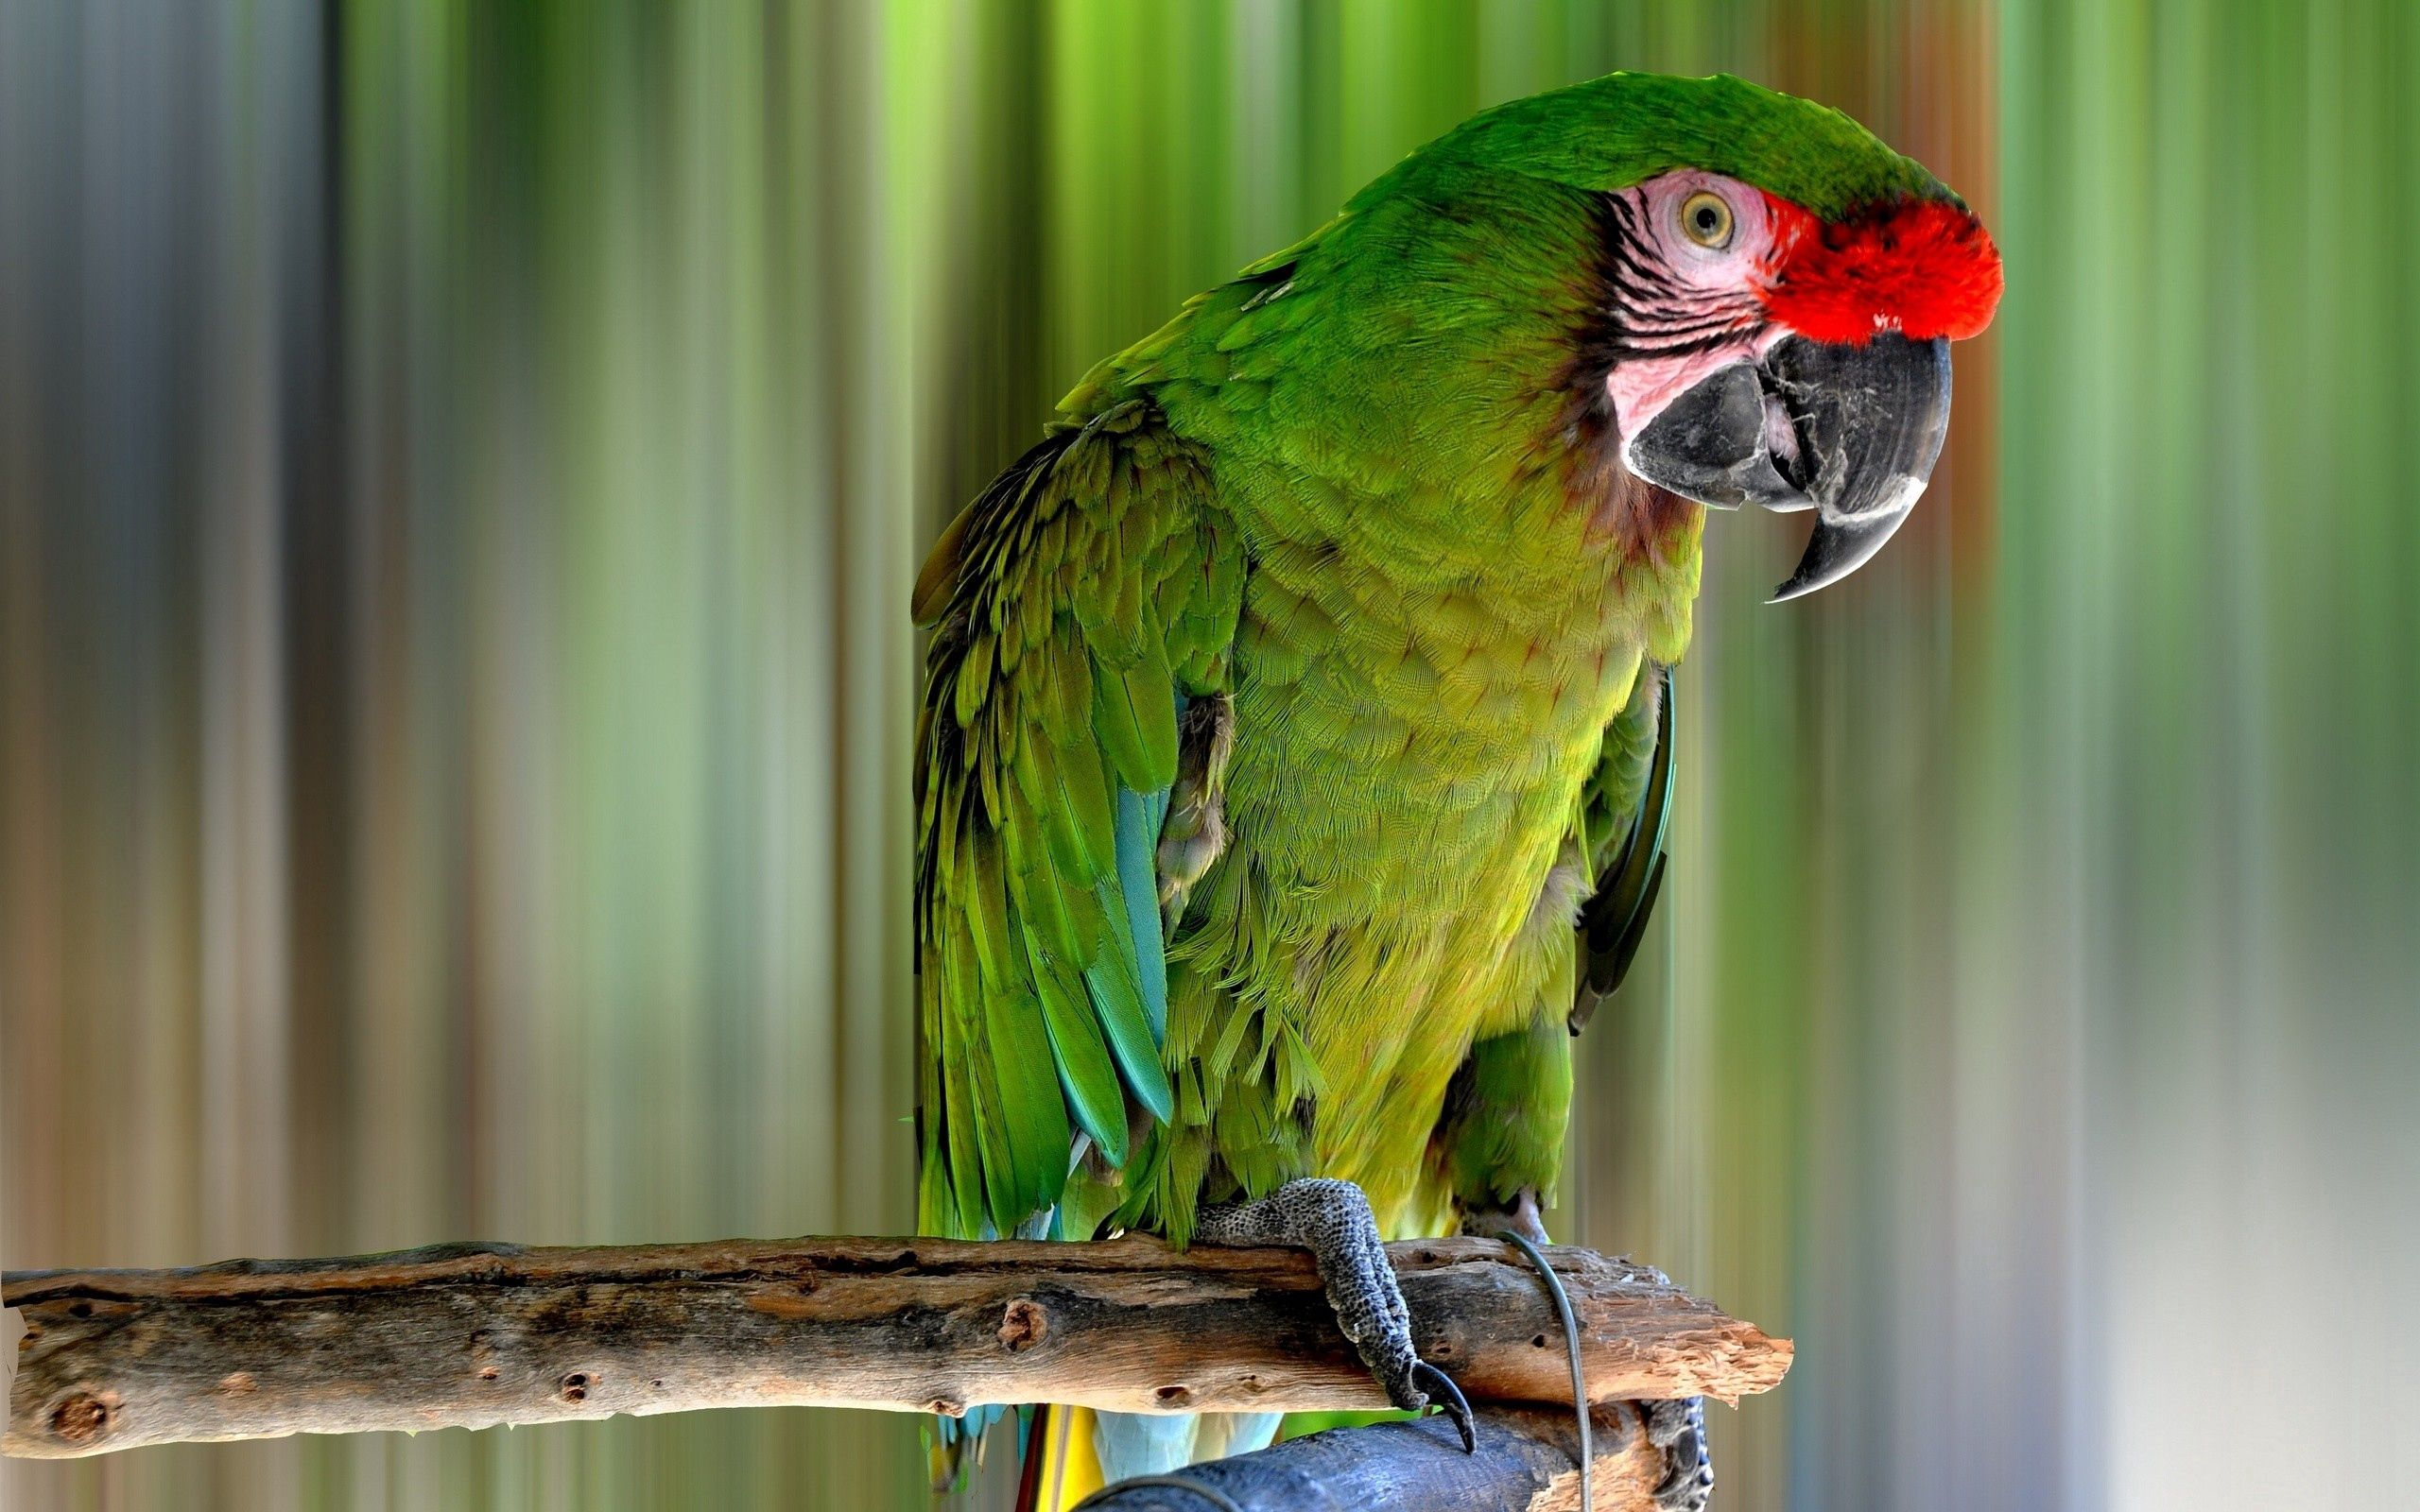 144980 download wallpaper Animals, Parrots, Bird, Color screensavers and pictures for free